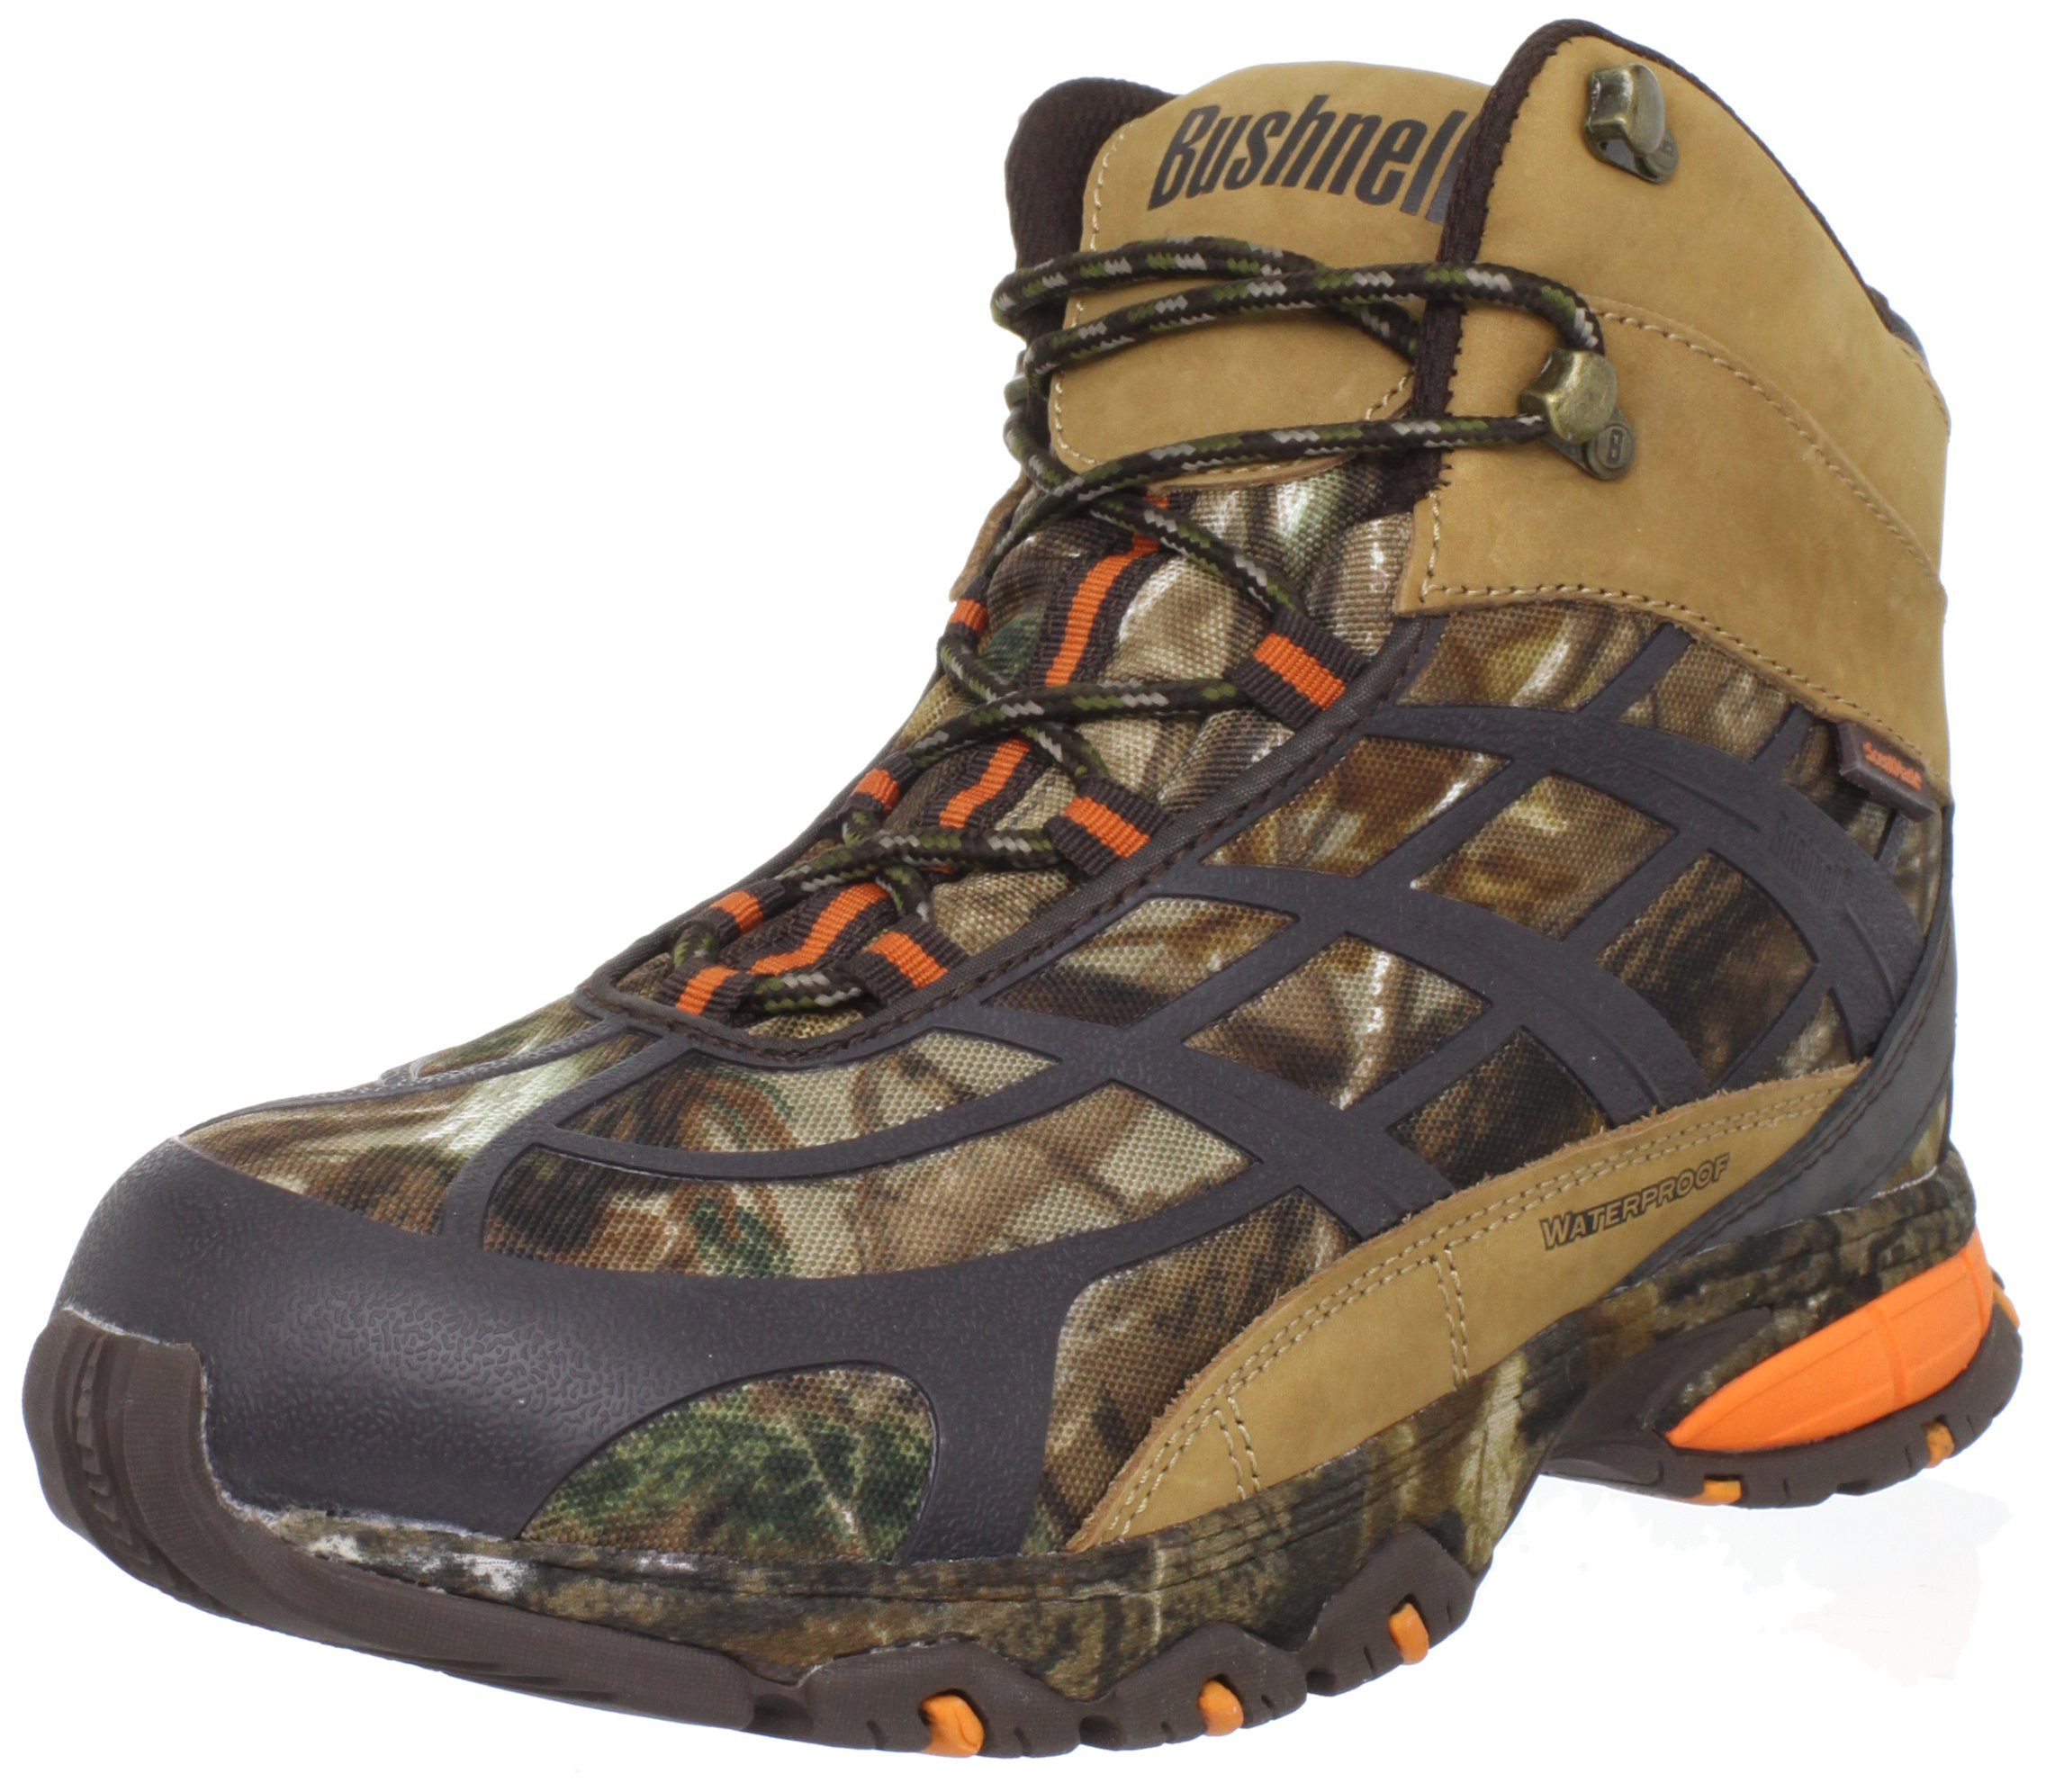 Bushnell Stalk Mid Boot,Realtree,9 M US